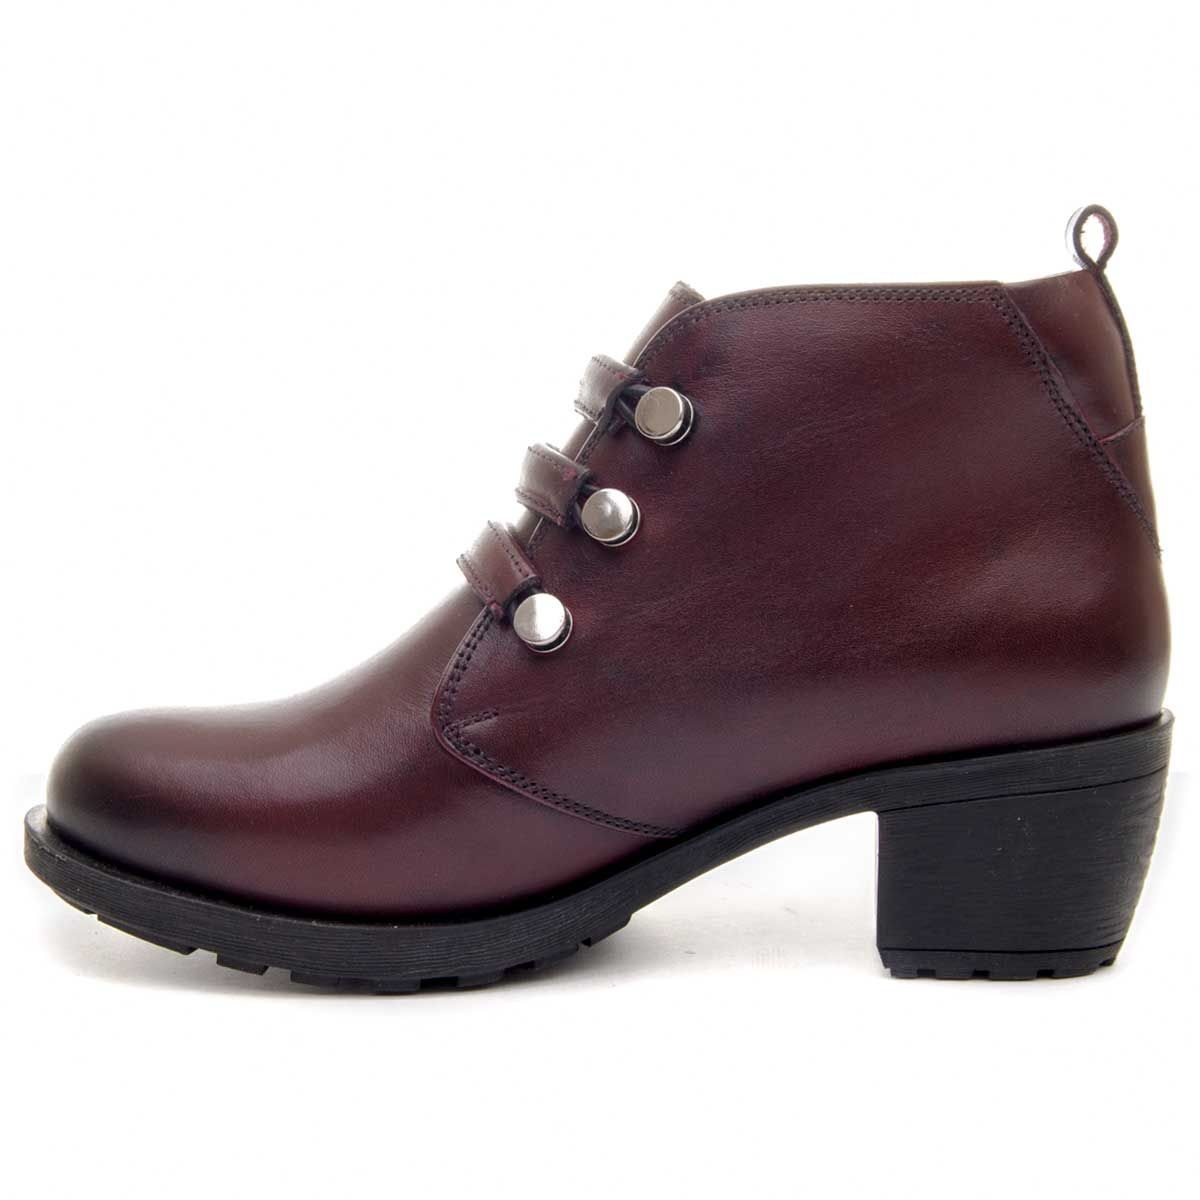 Purapiel Lace Up Ankle Boot in Bordo